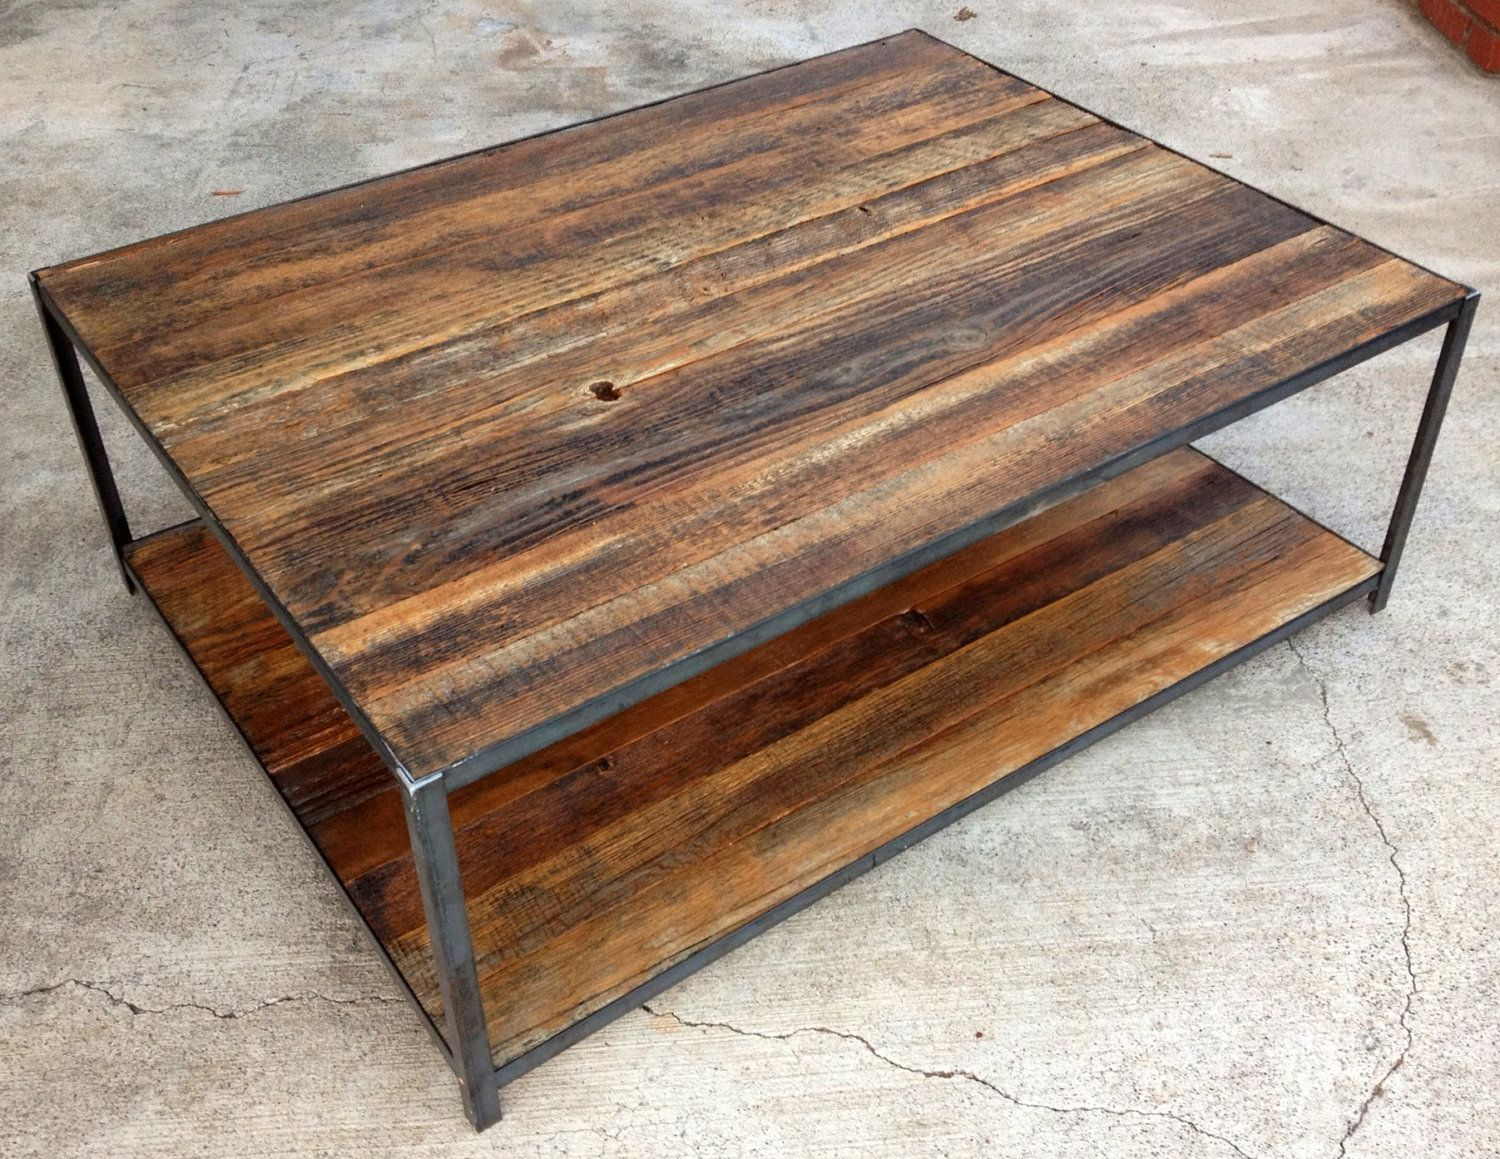 Reclaimed Wood And Angle Iron Coffee Table Via Etsy Home Sweet Home Pinterest